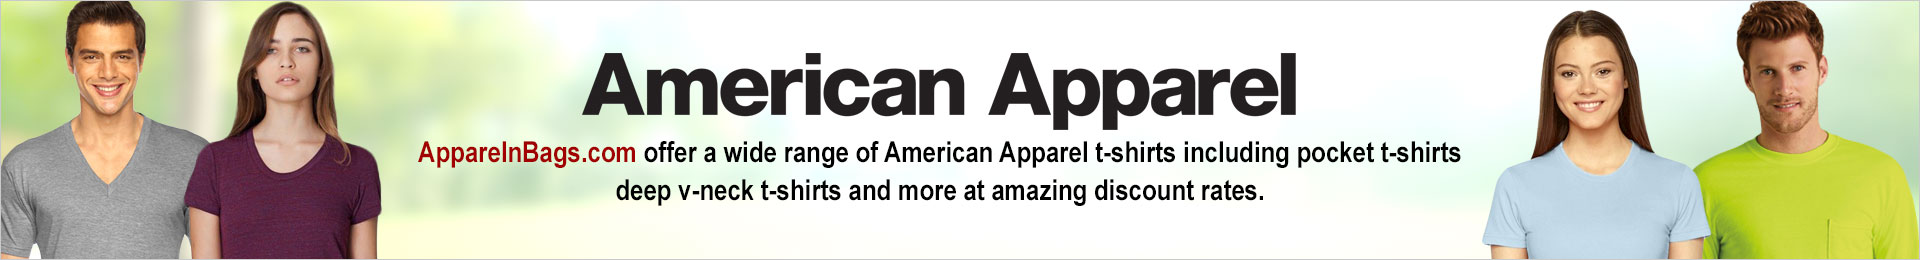 American Apparel Wholesale T Shirts